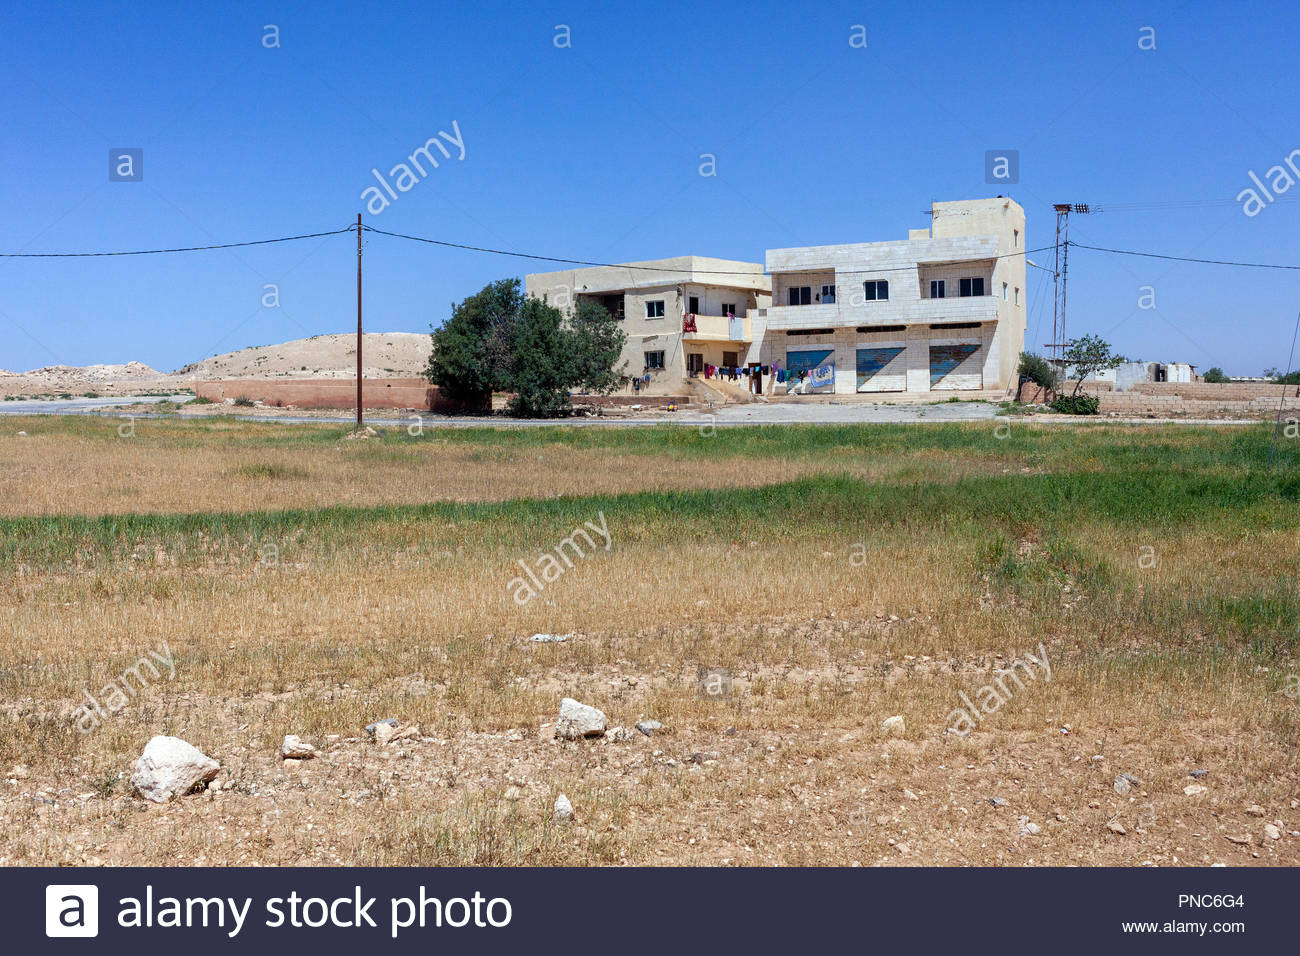 Large House in Need of Repair in Jordan, near Amman in the Middle East - Stock Image